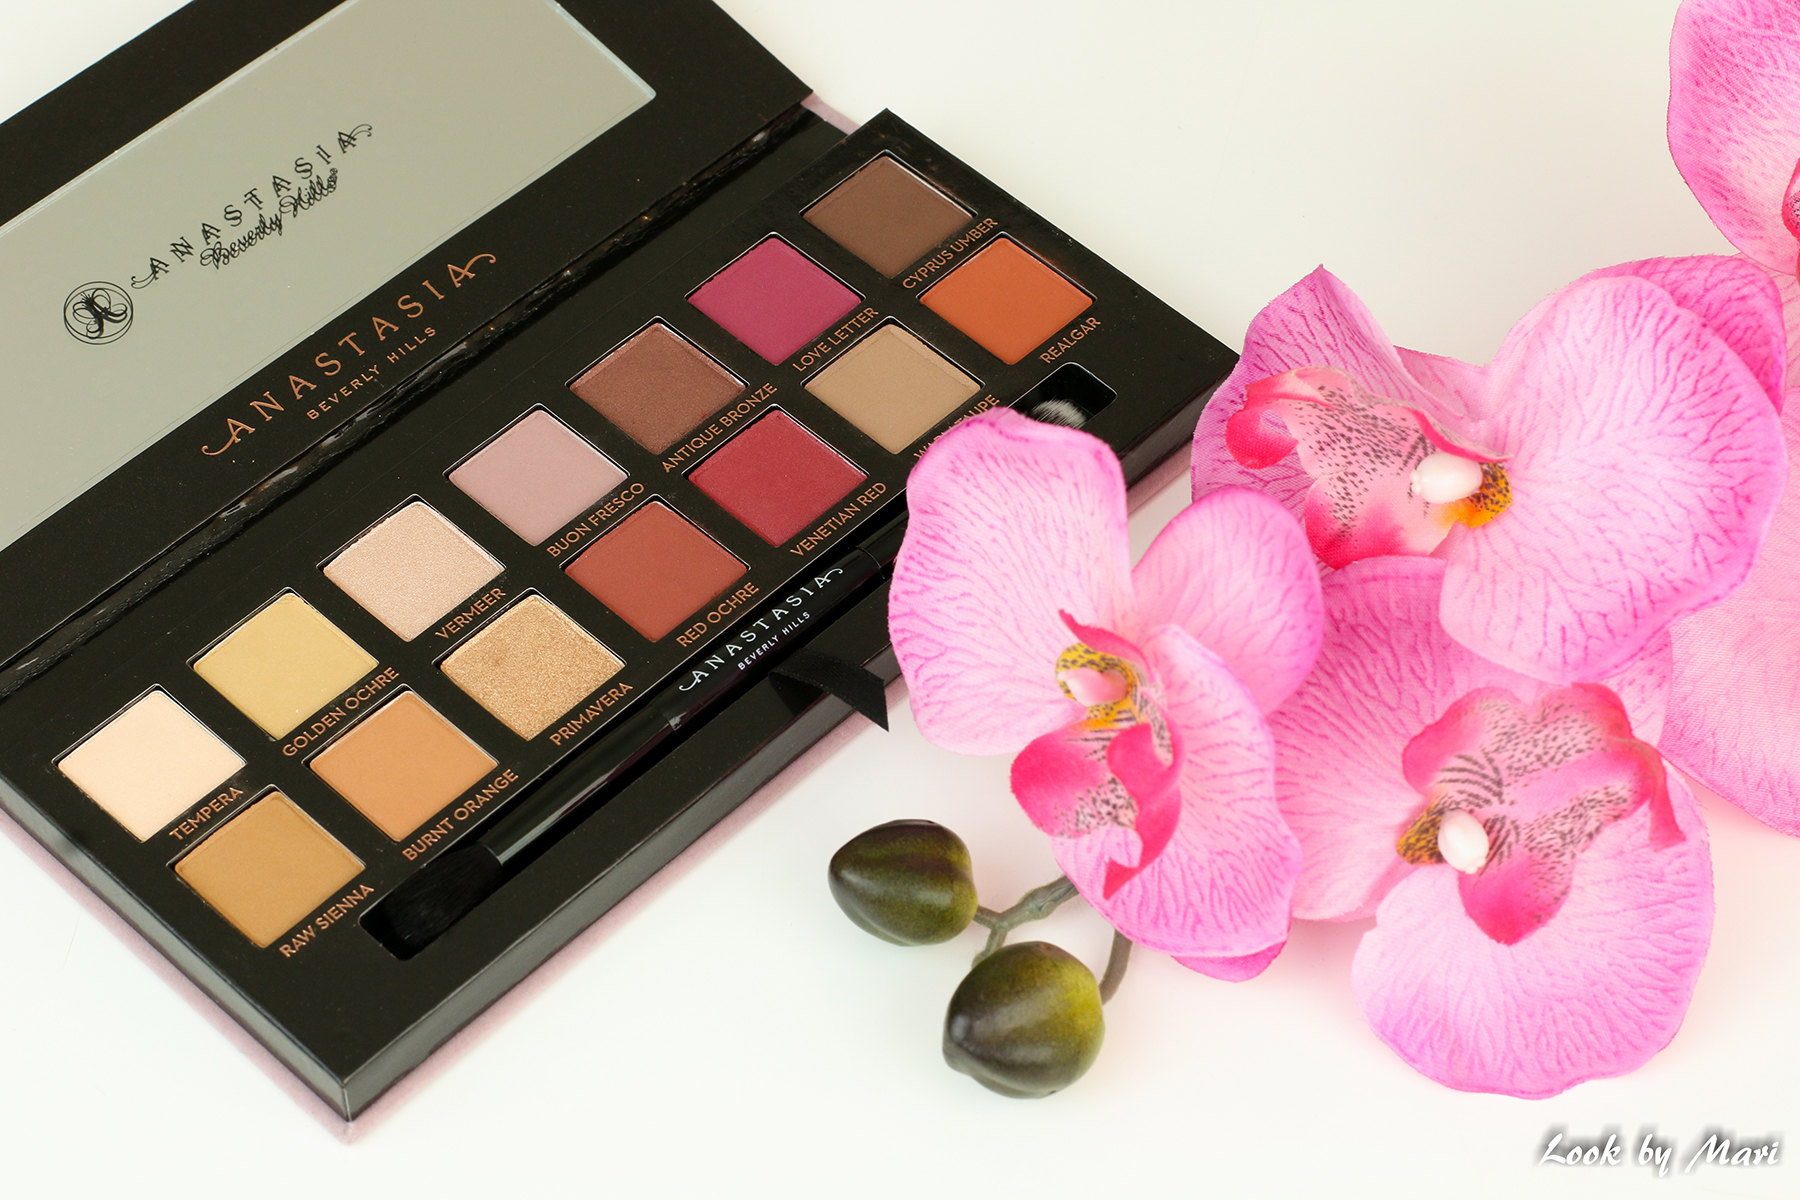 11 abh modern renaissance eyeshadow palette beautybay cultbeauty suomi suomeen